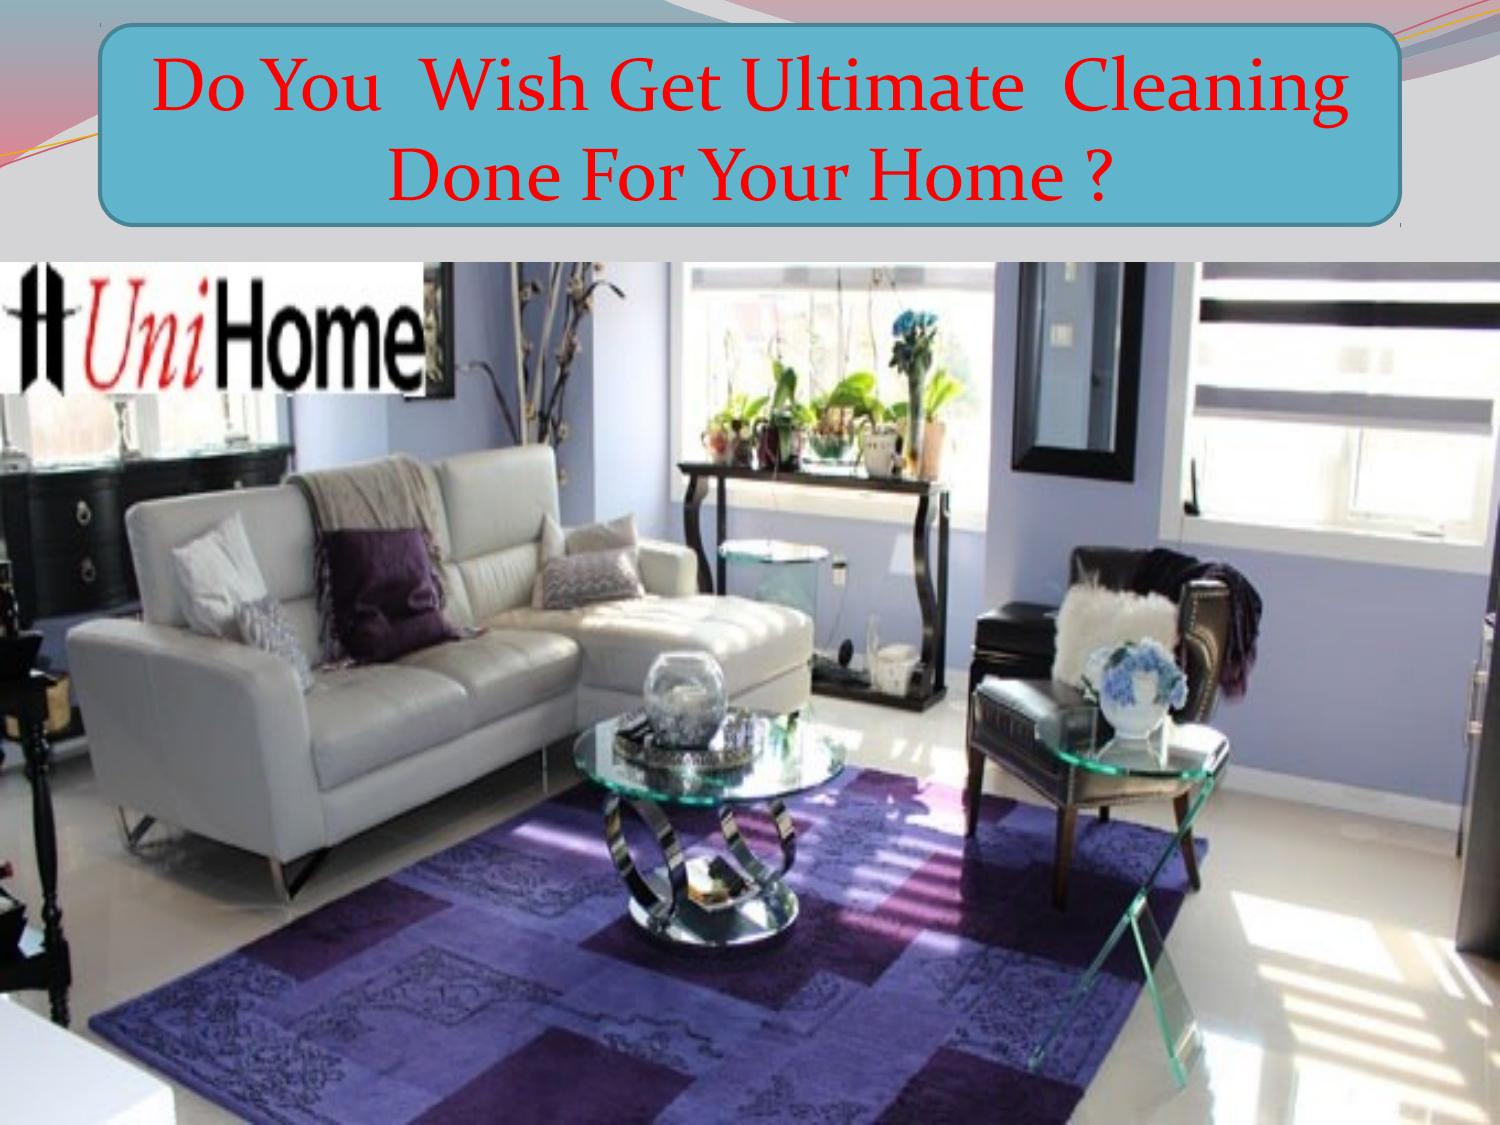 Do you wish get ultimate cleaning done for your home